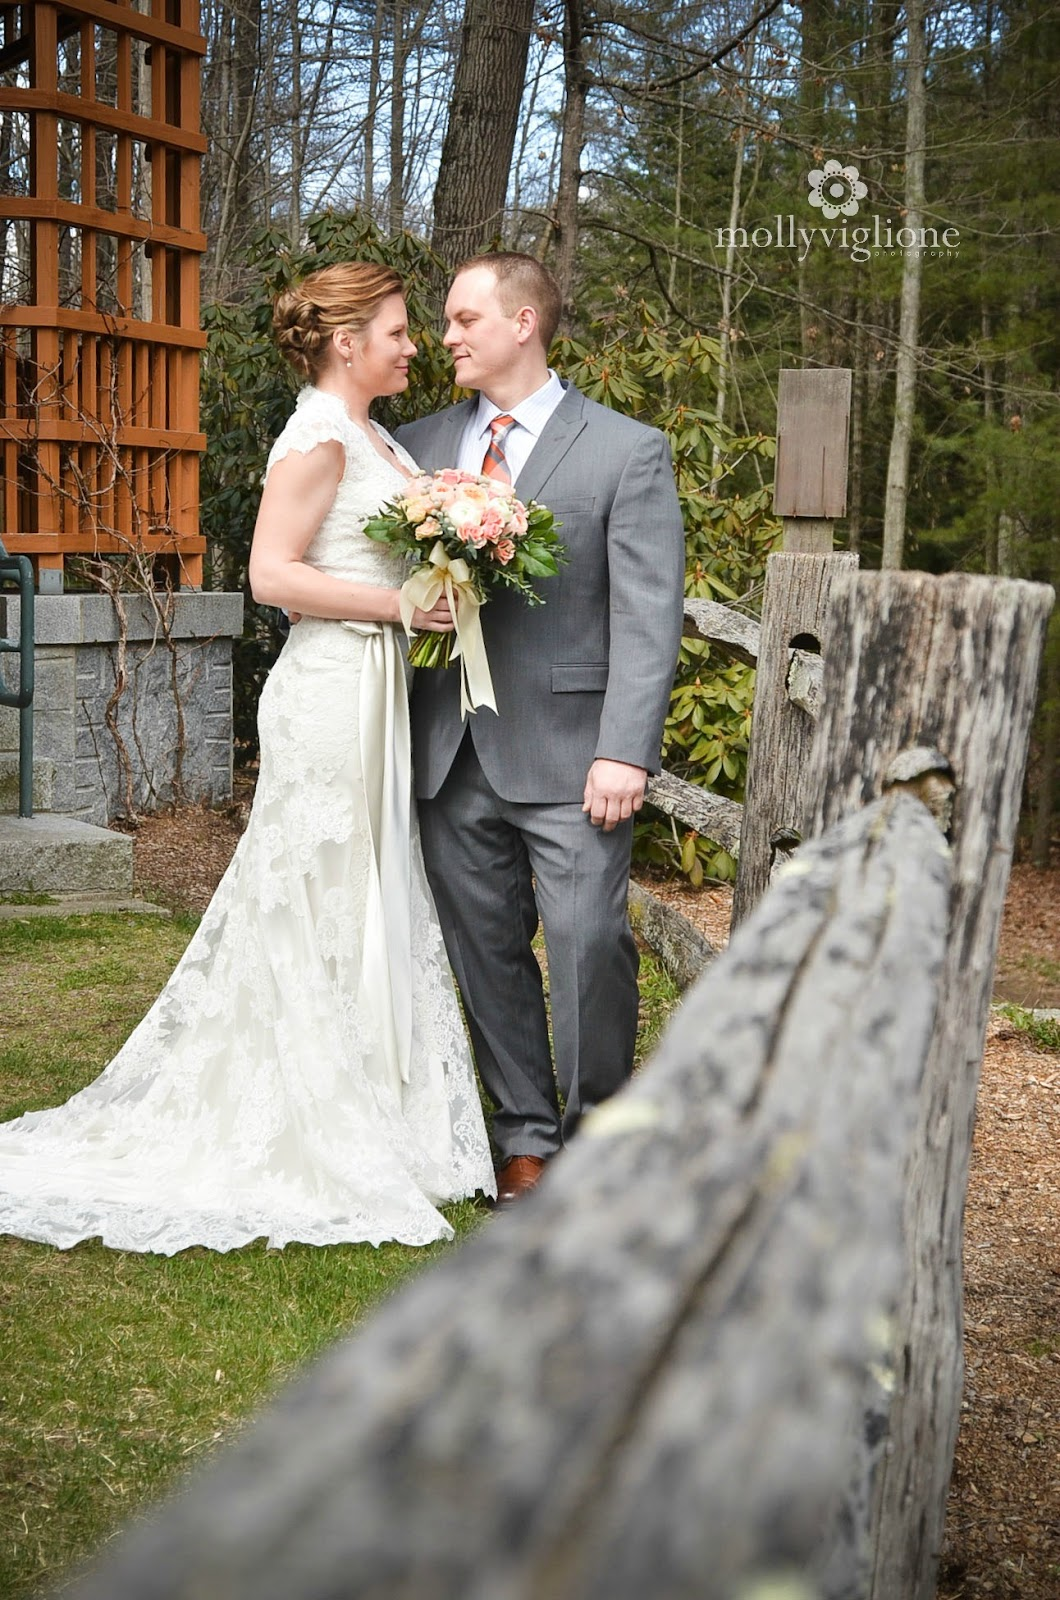 molly viglione photography shaun lindsey tie the knot